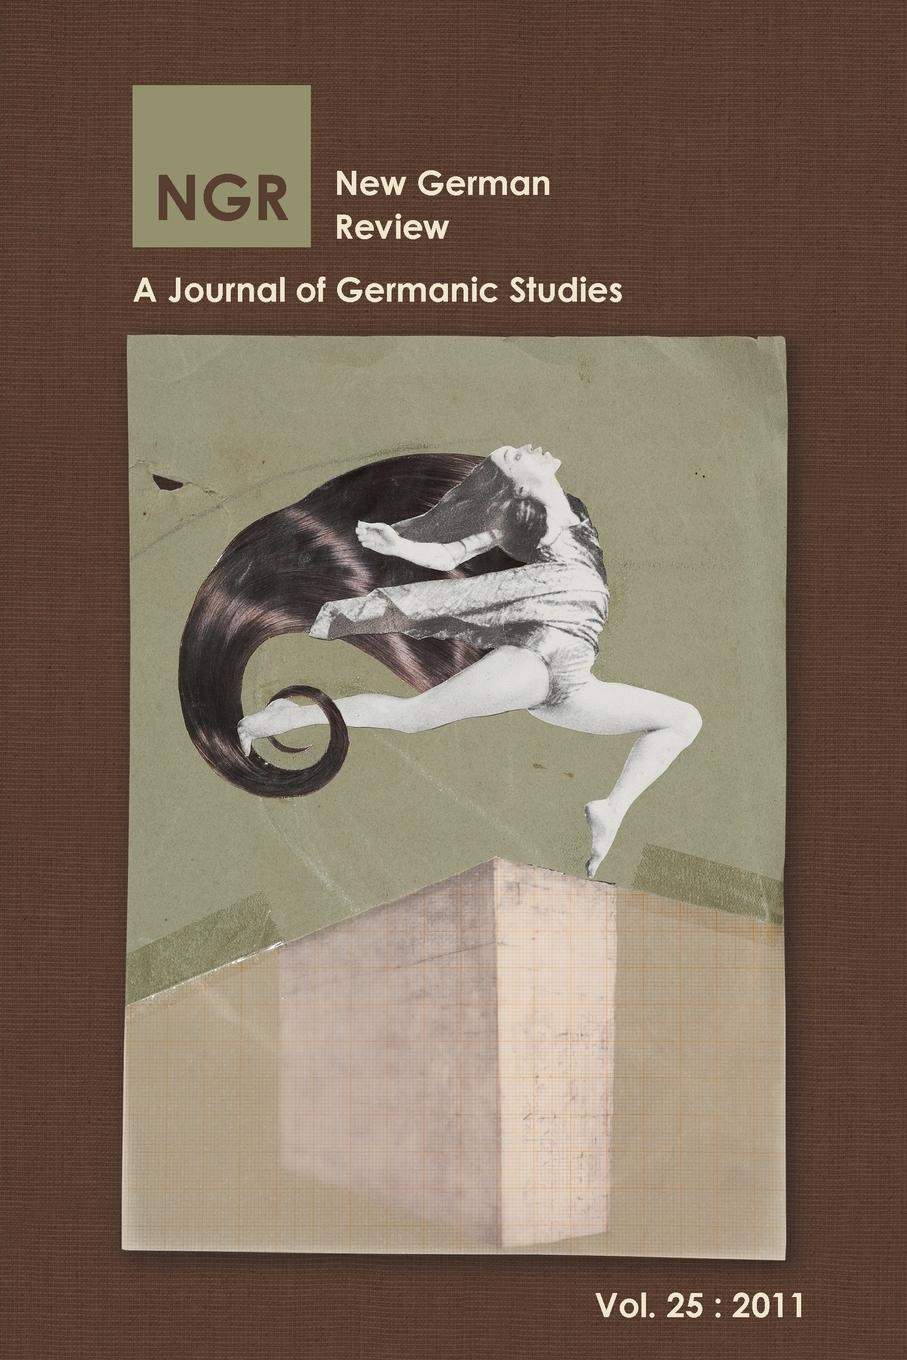 New German Review New German Review. A Journal of Germanic Studies (Volume 25) 2011 new german review new german review a journal of germanic studies volume 25 2011